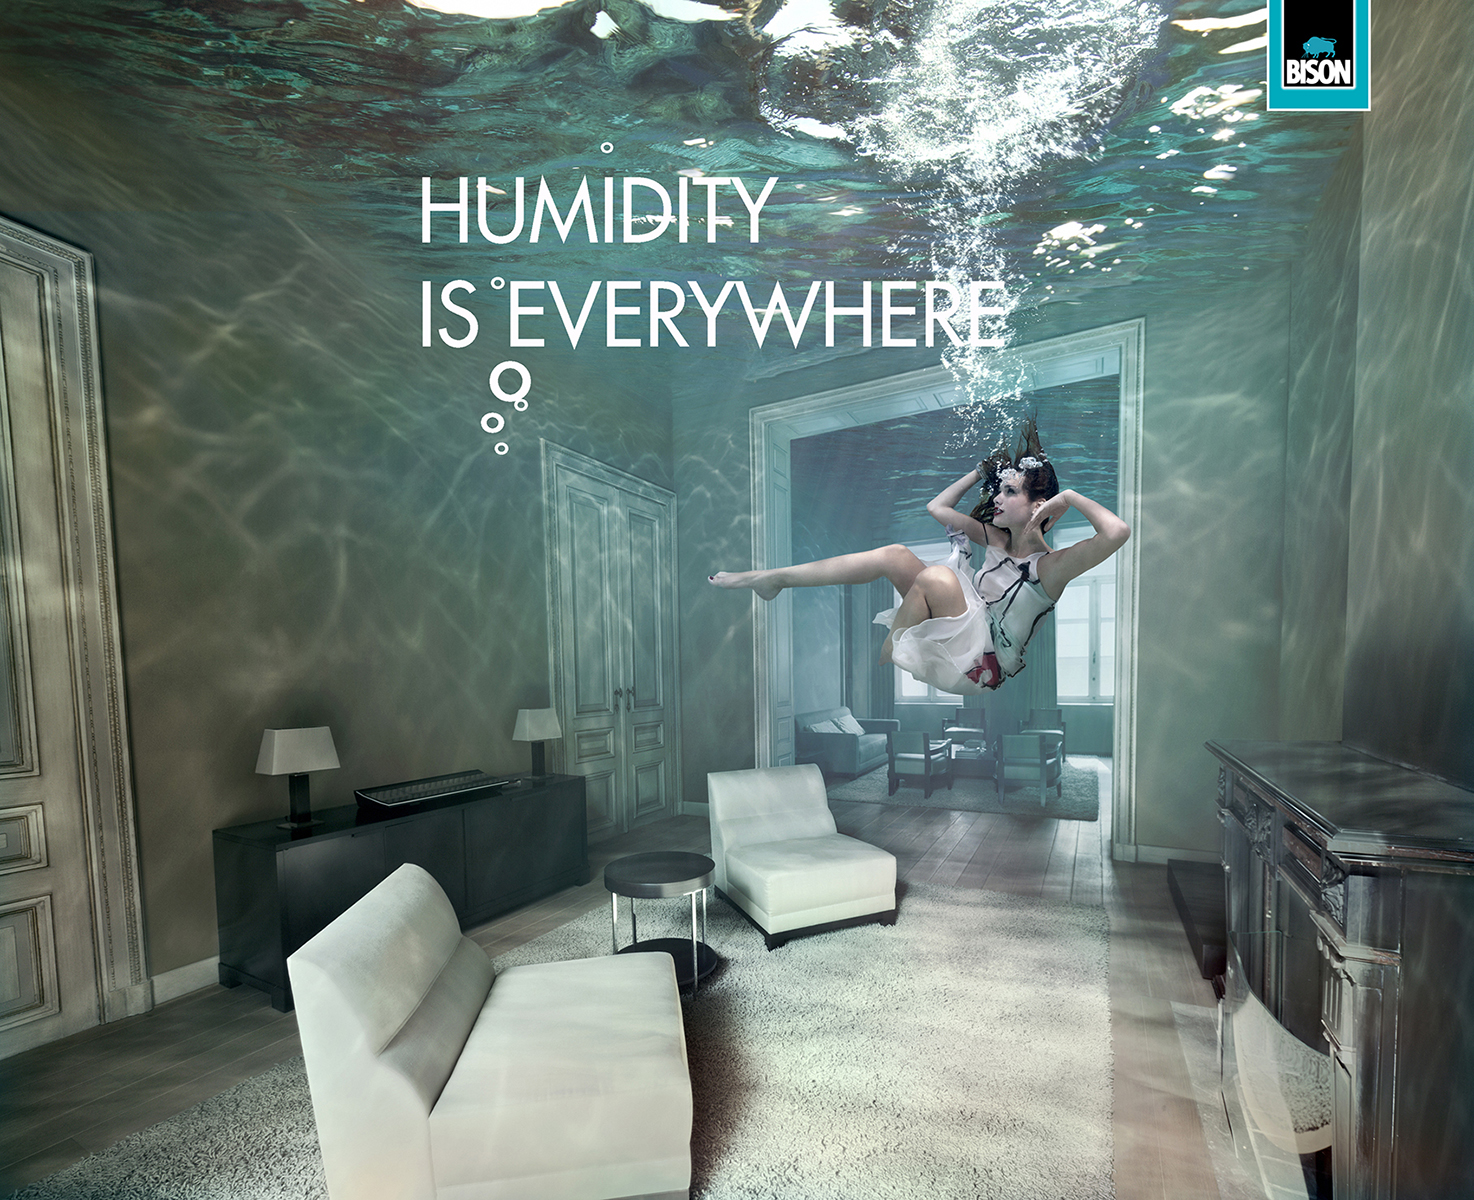 UNDERWATER ADVERTISING